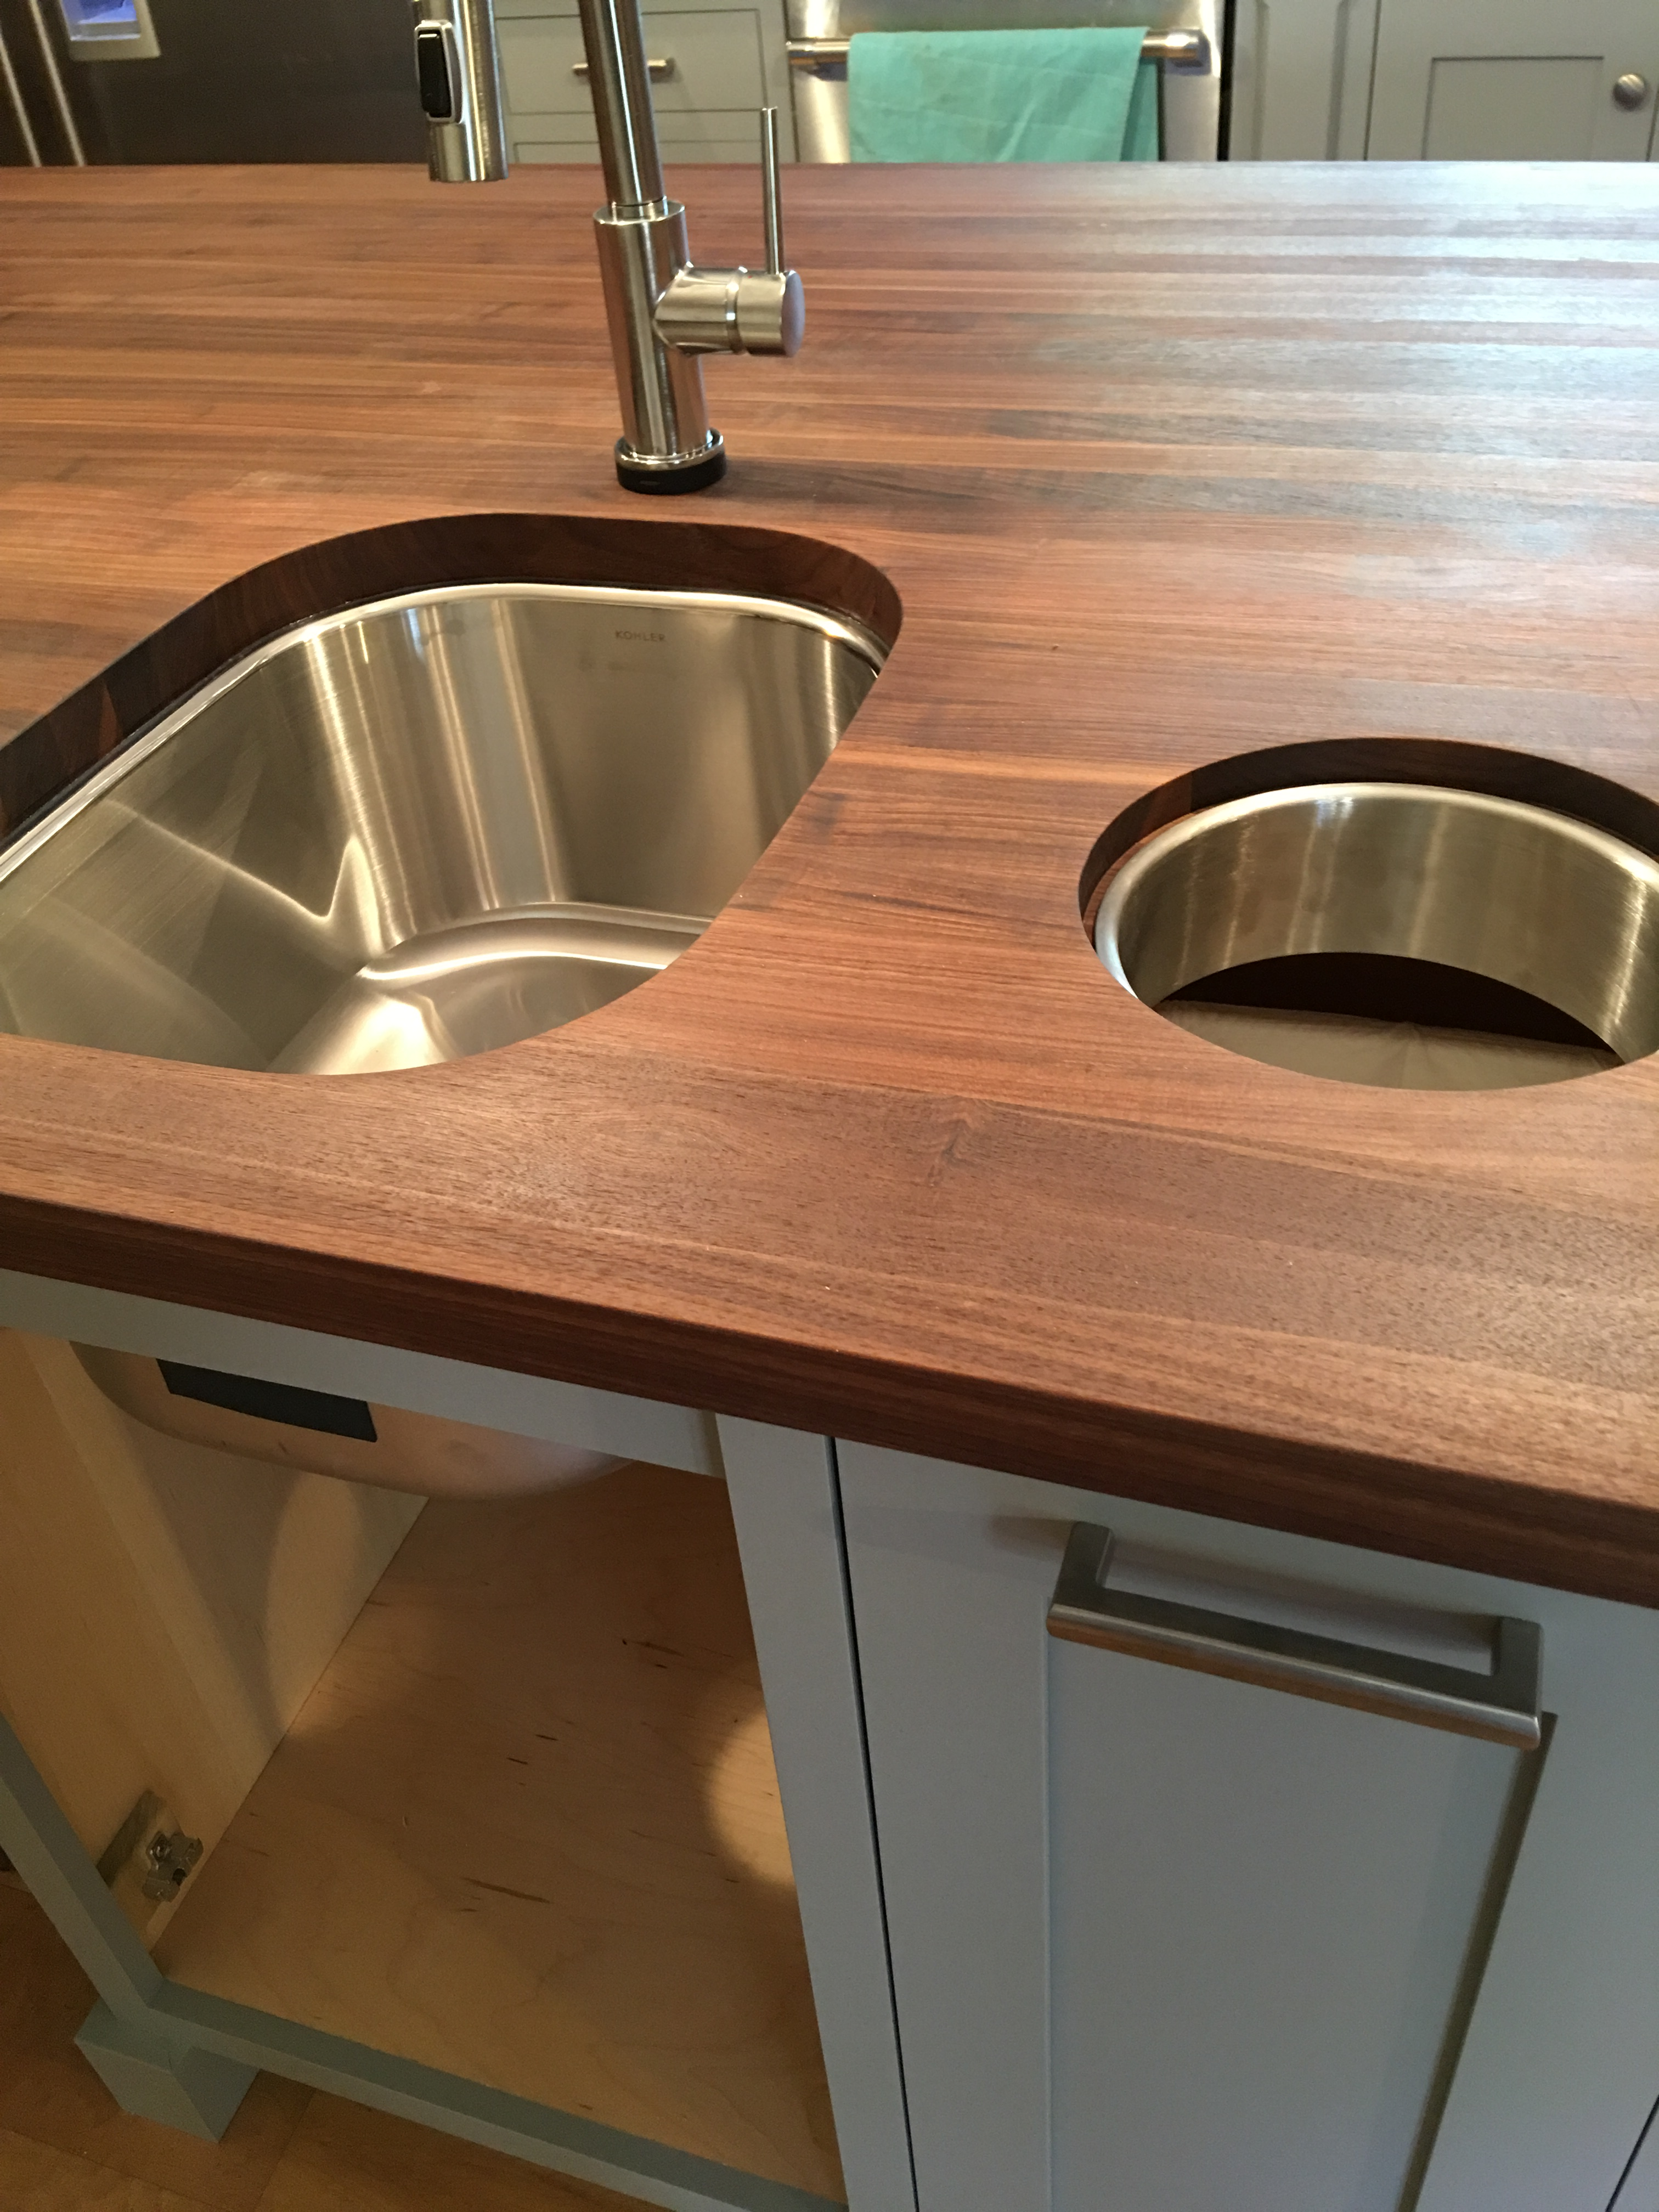 Stainless Steel Sink And Custom Trash Chute In Custom Made Kitchen Island  With Oiled Walnut Counter Top